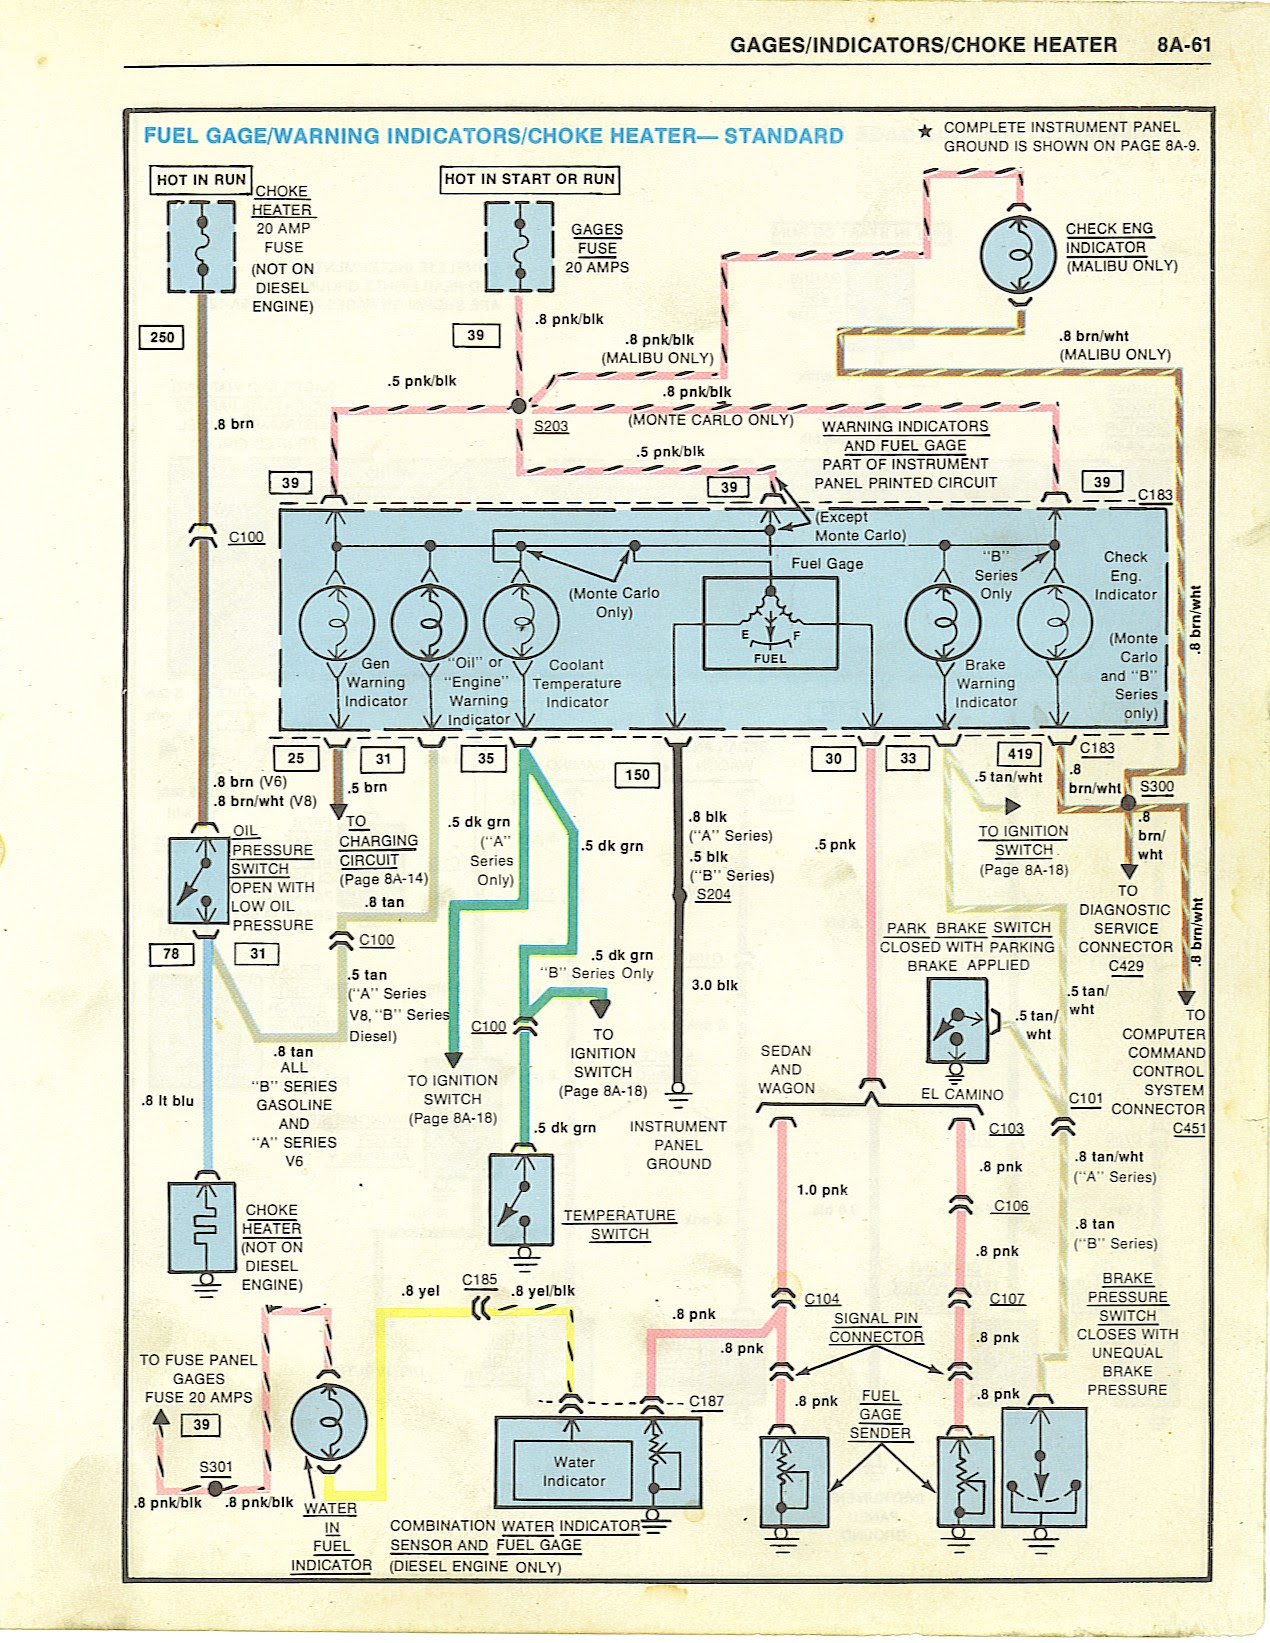 Schema Wiring Diagram For 72 Chevelle Full Quality Pptdiagrams Bruxelles Enscene Be